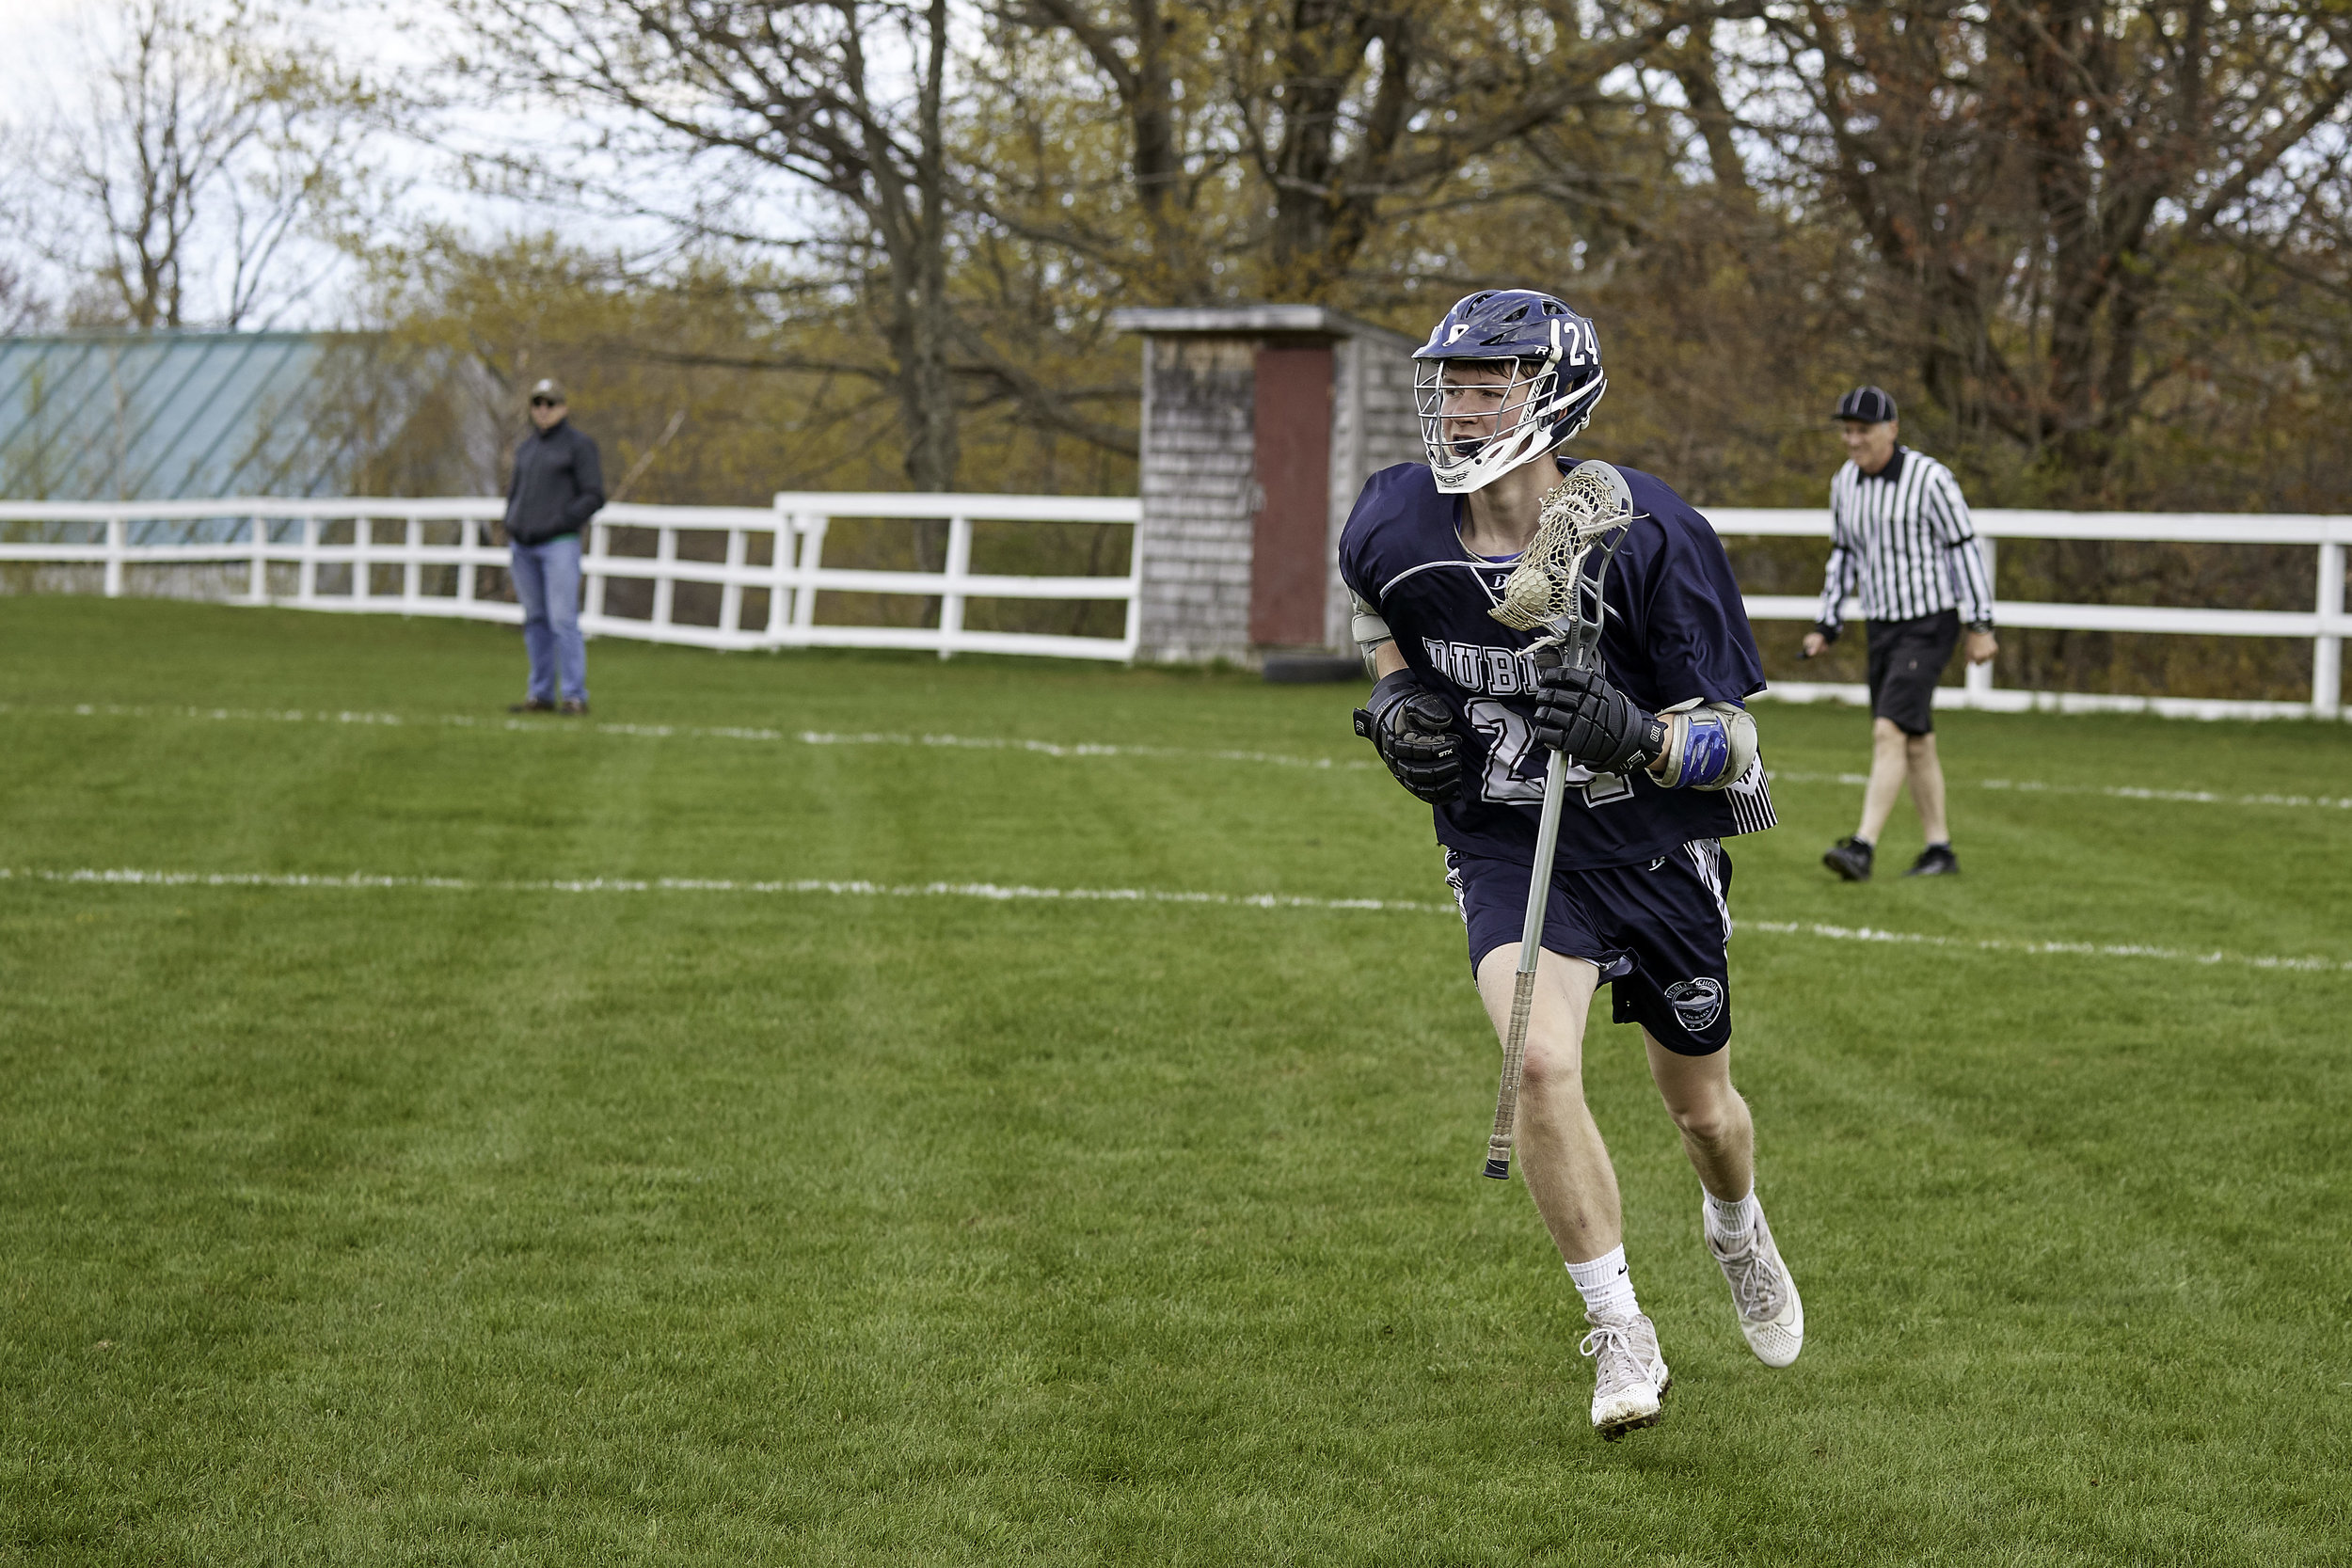 Boys Lax vs Northfield Mount Hermon JV - May 15 2019 - 0041.jpg